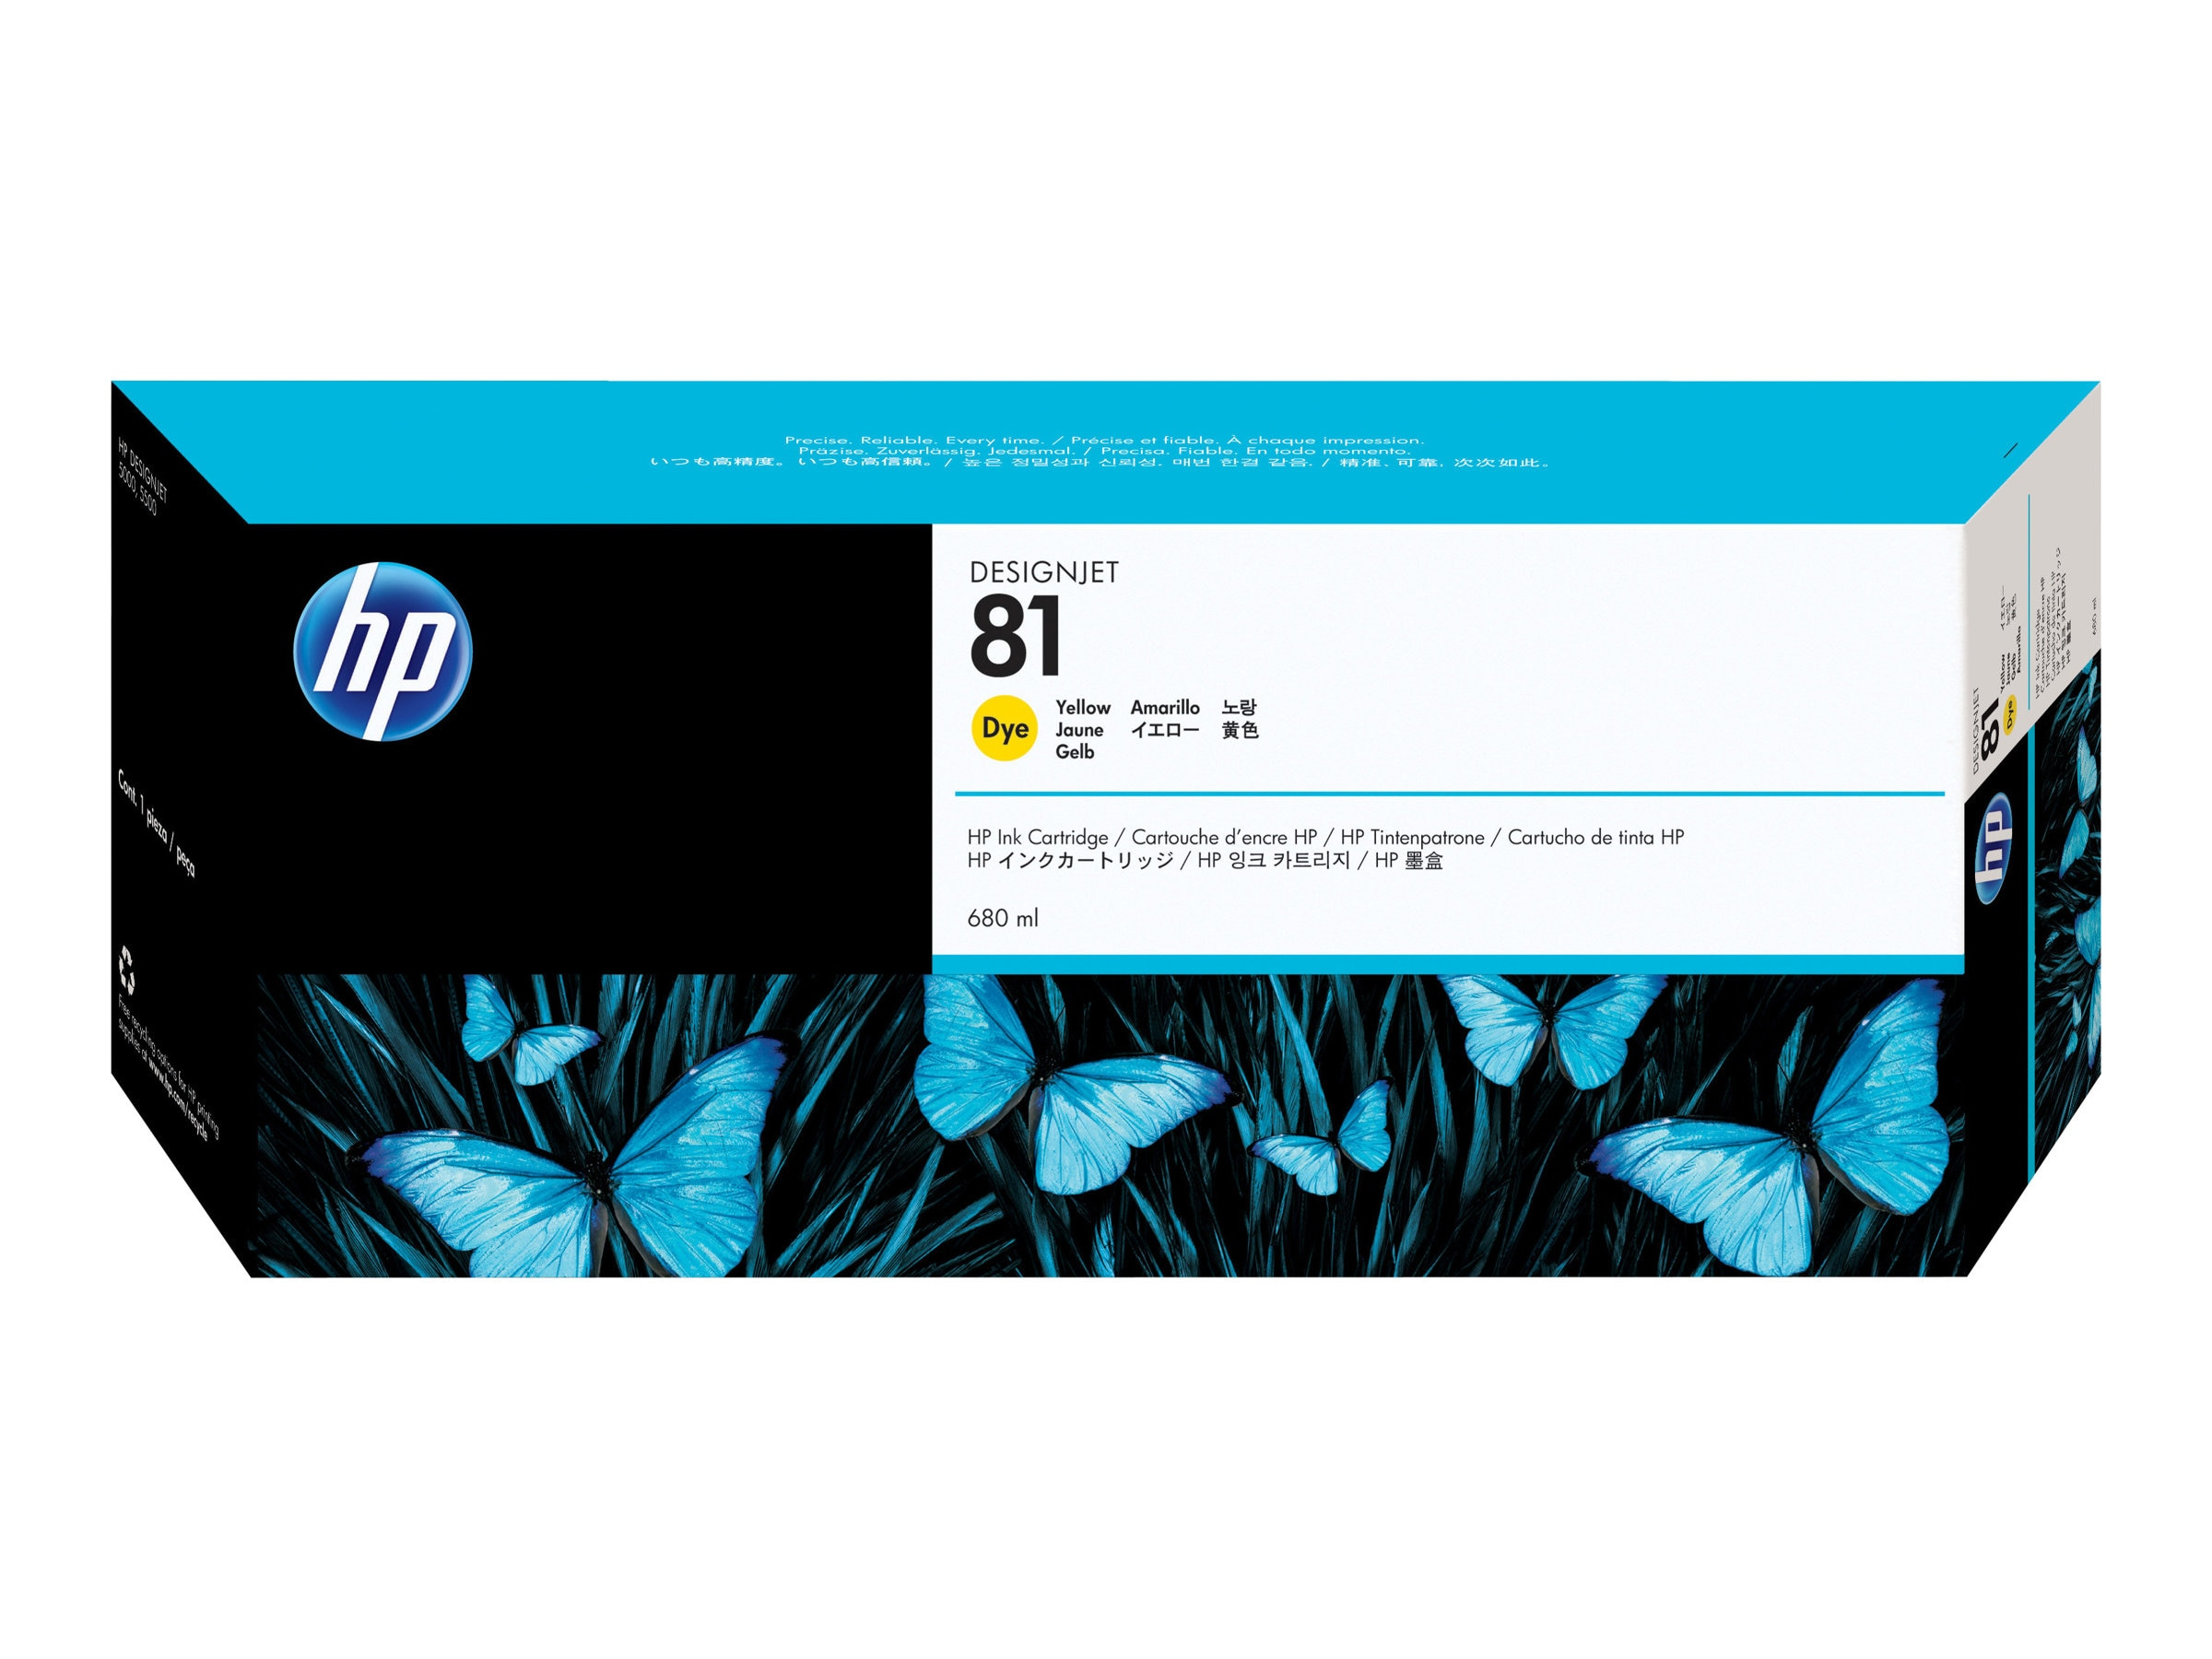 HP Inc. C4933A Image 2